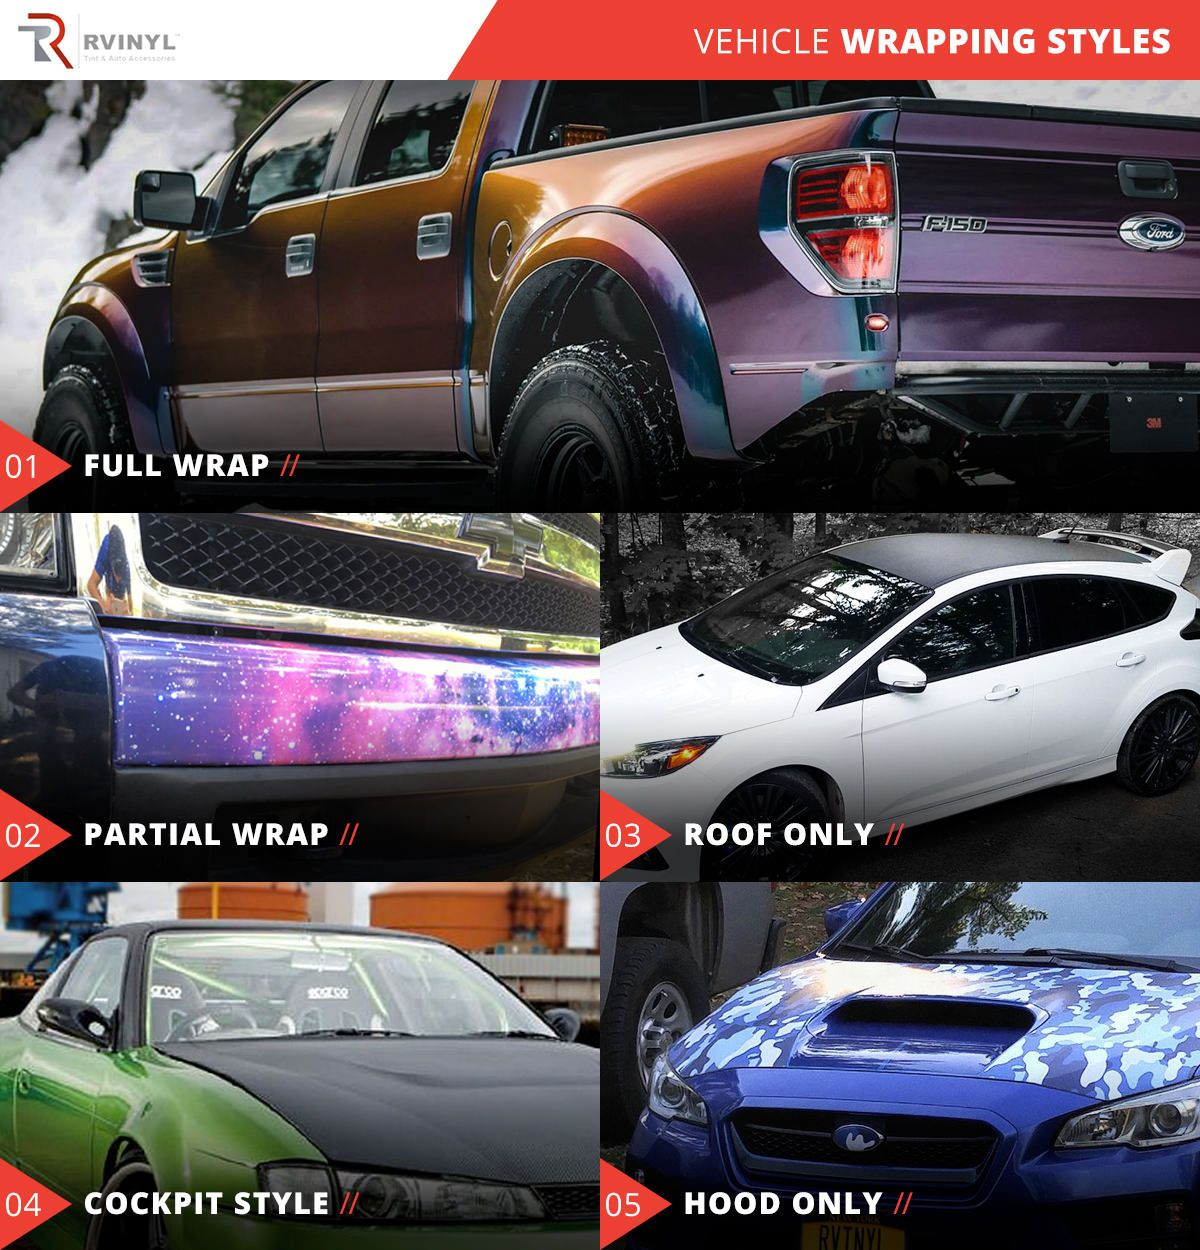 vehicle wrapping styles